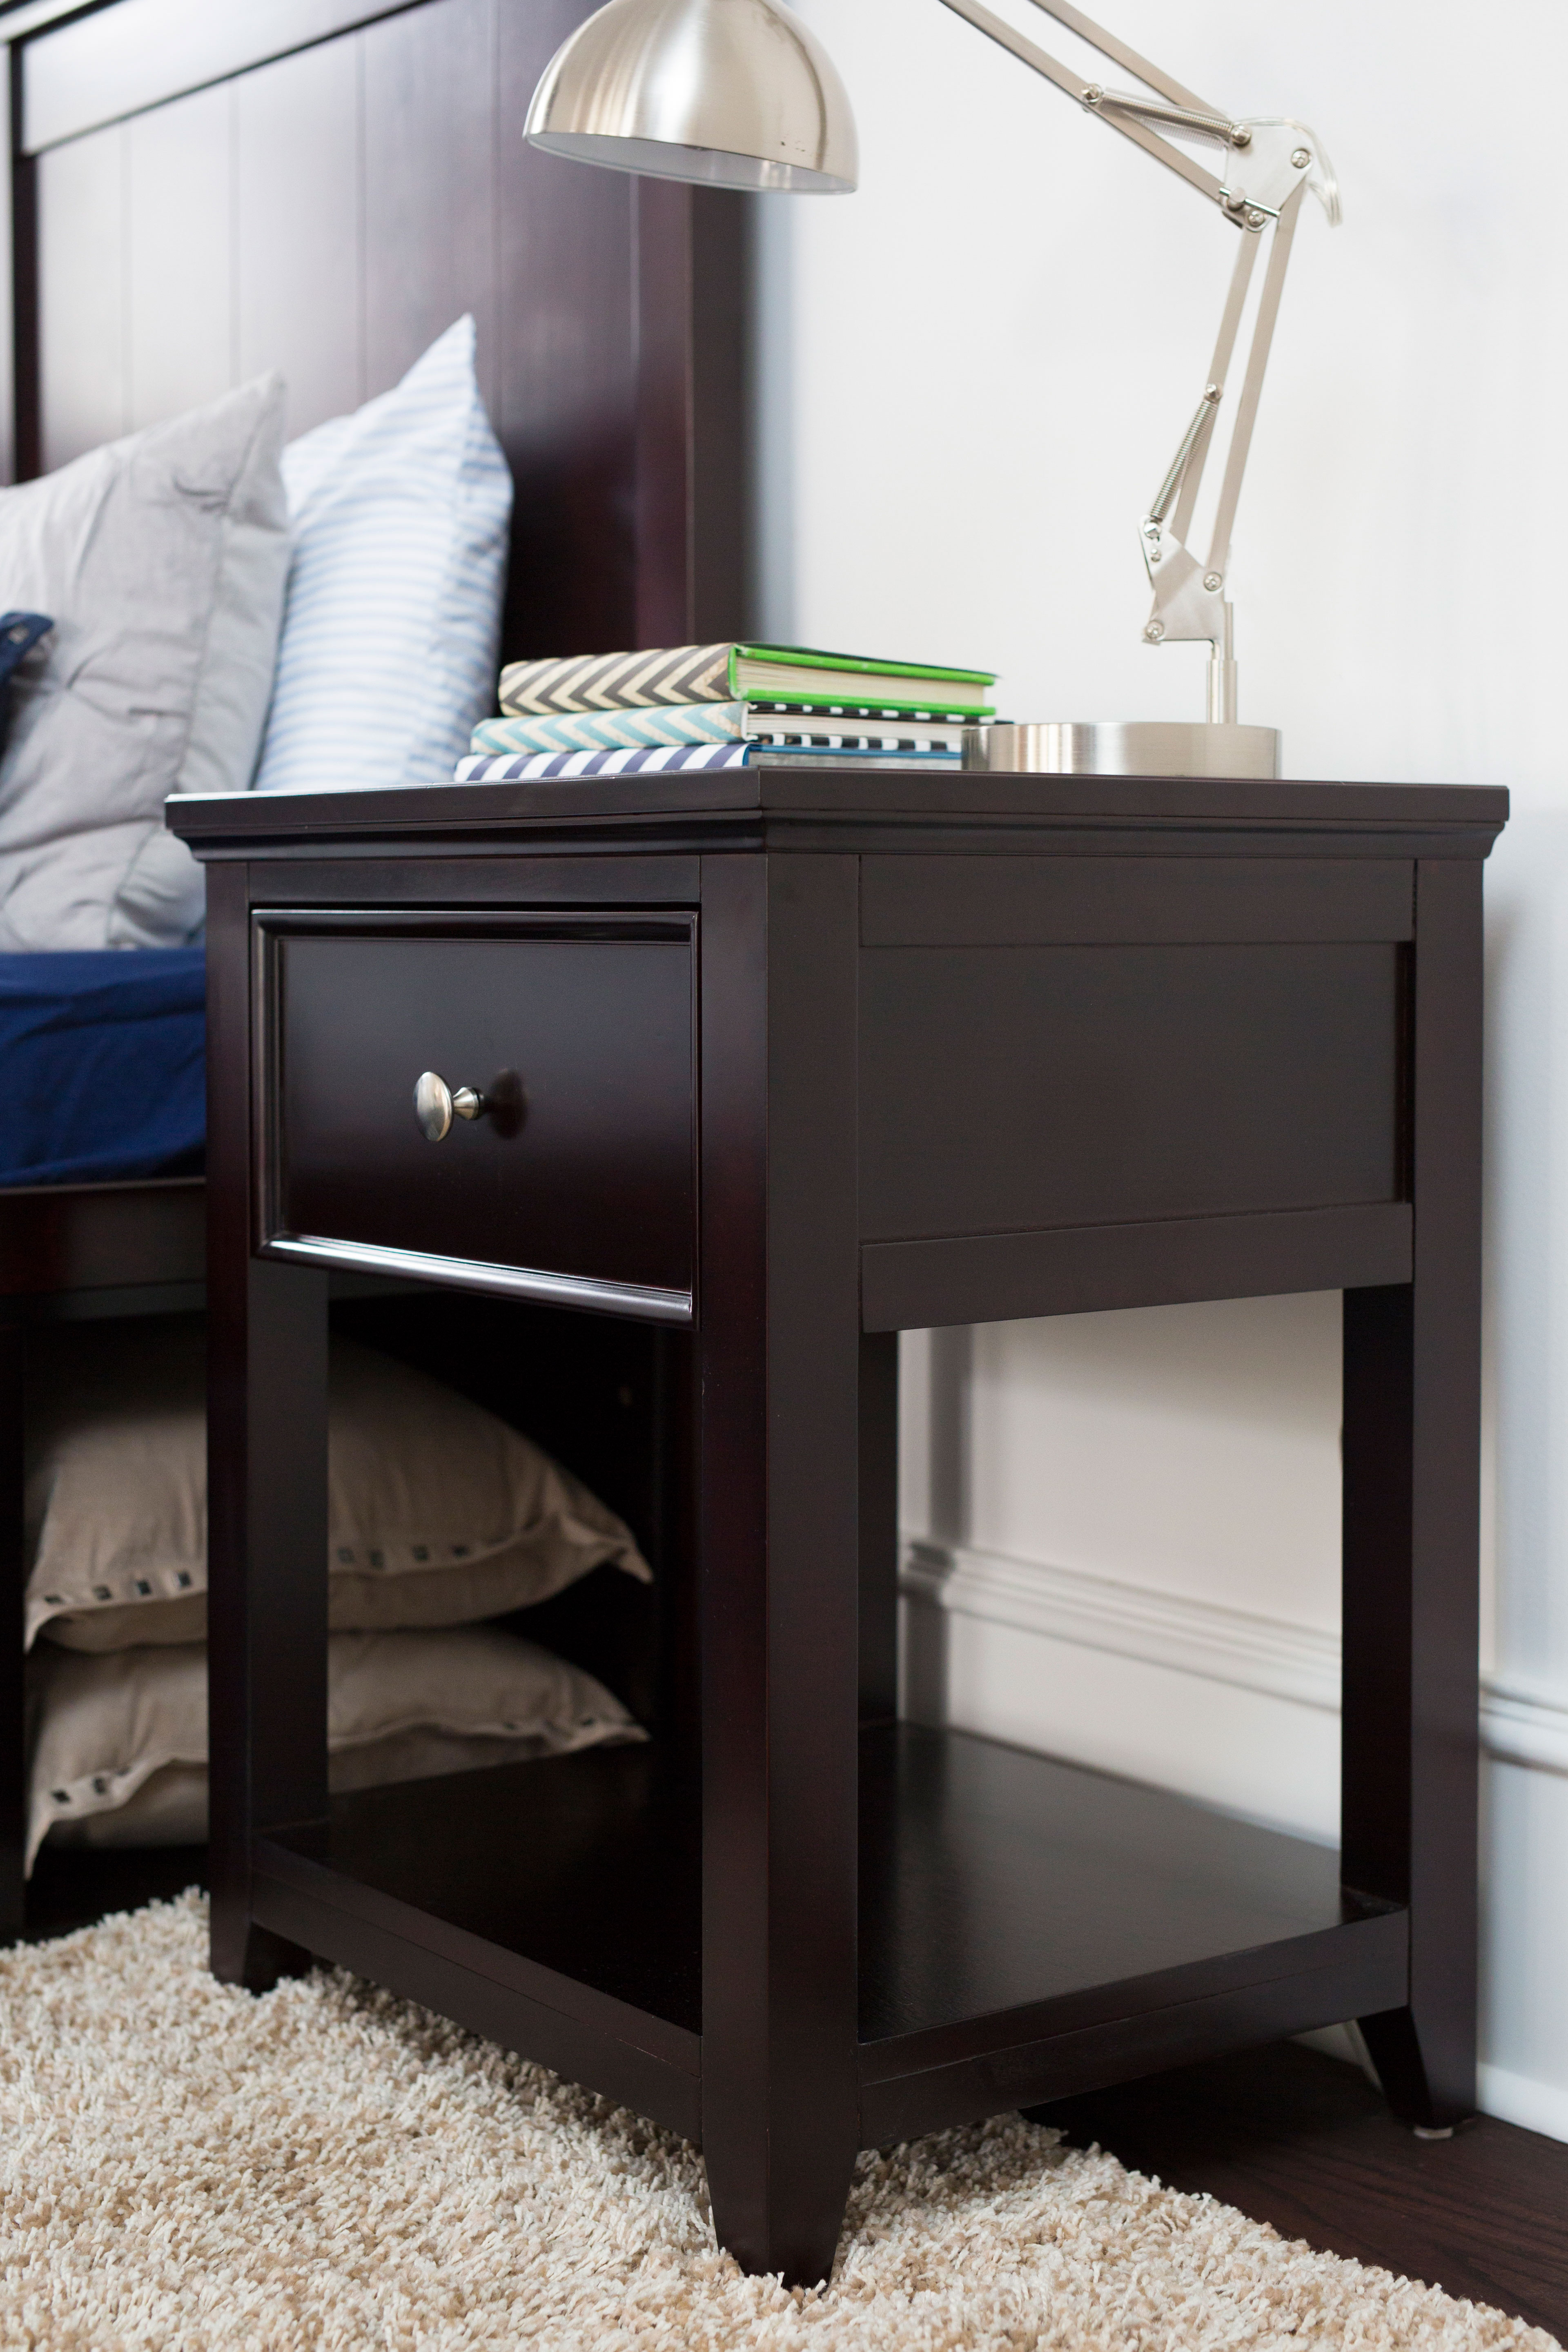 overstock abbyson drawer product kingston shipping home free living dressers garden today espresso dresser chest